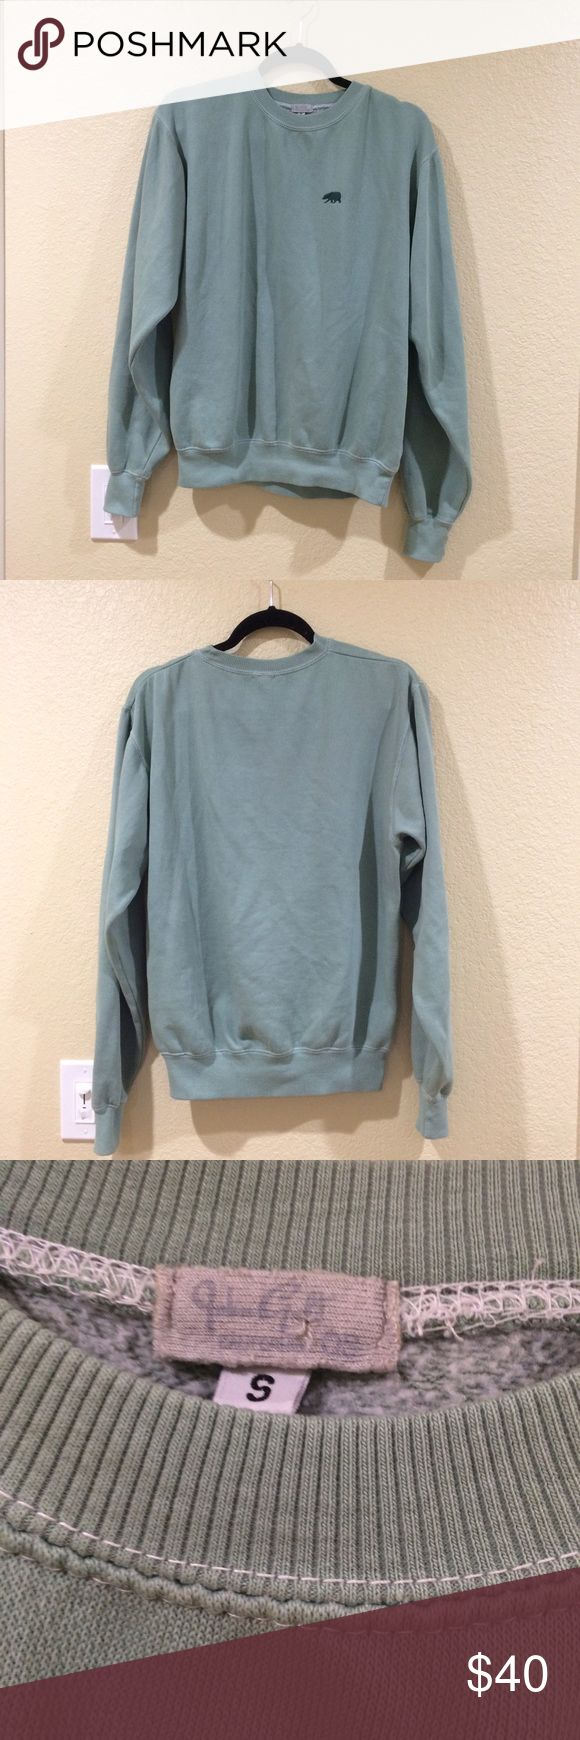 Brandy Melville Erica CA embroidery sweatshirt Relaxed fit blended cotton pullover sweatshirt in a stonewashed green with a crewneck front and small dark green bear embroidery on left chest. 27 inch length and 23 inch bust. New, never worn or washed! NO TRADES Brandy Melville Sweaters Crew & Scoop Necks